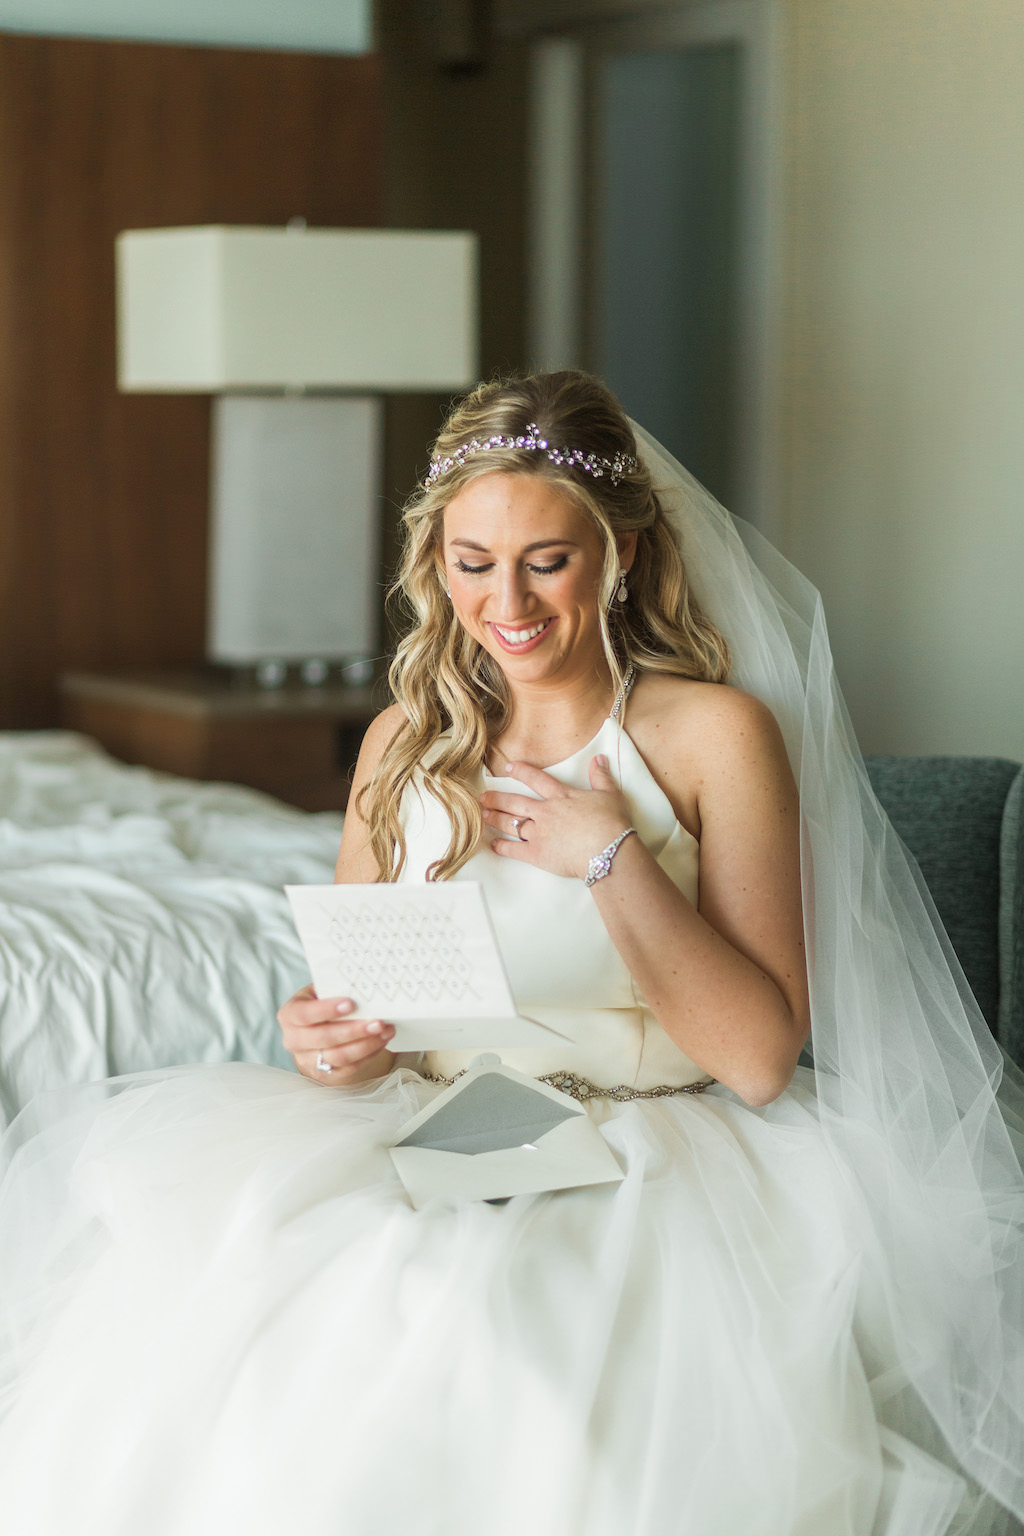 Bride Getting Ready Portrait Reading Letter from Groom, Wearing Halter Hayley Paige Wedding Dress and Jeweled Headpiece